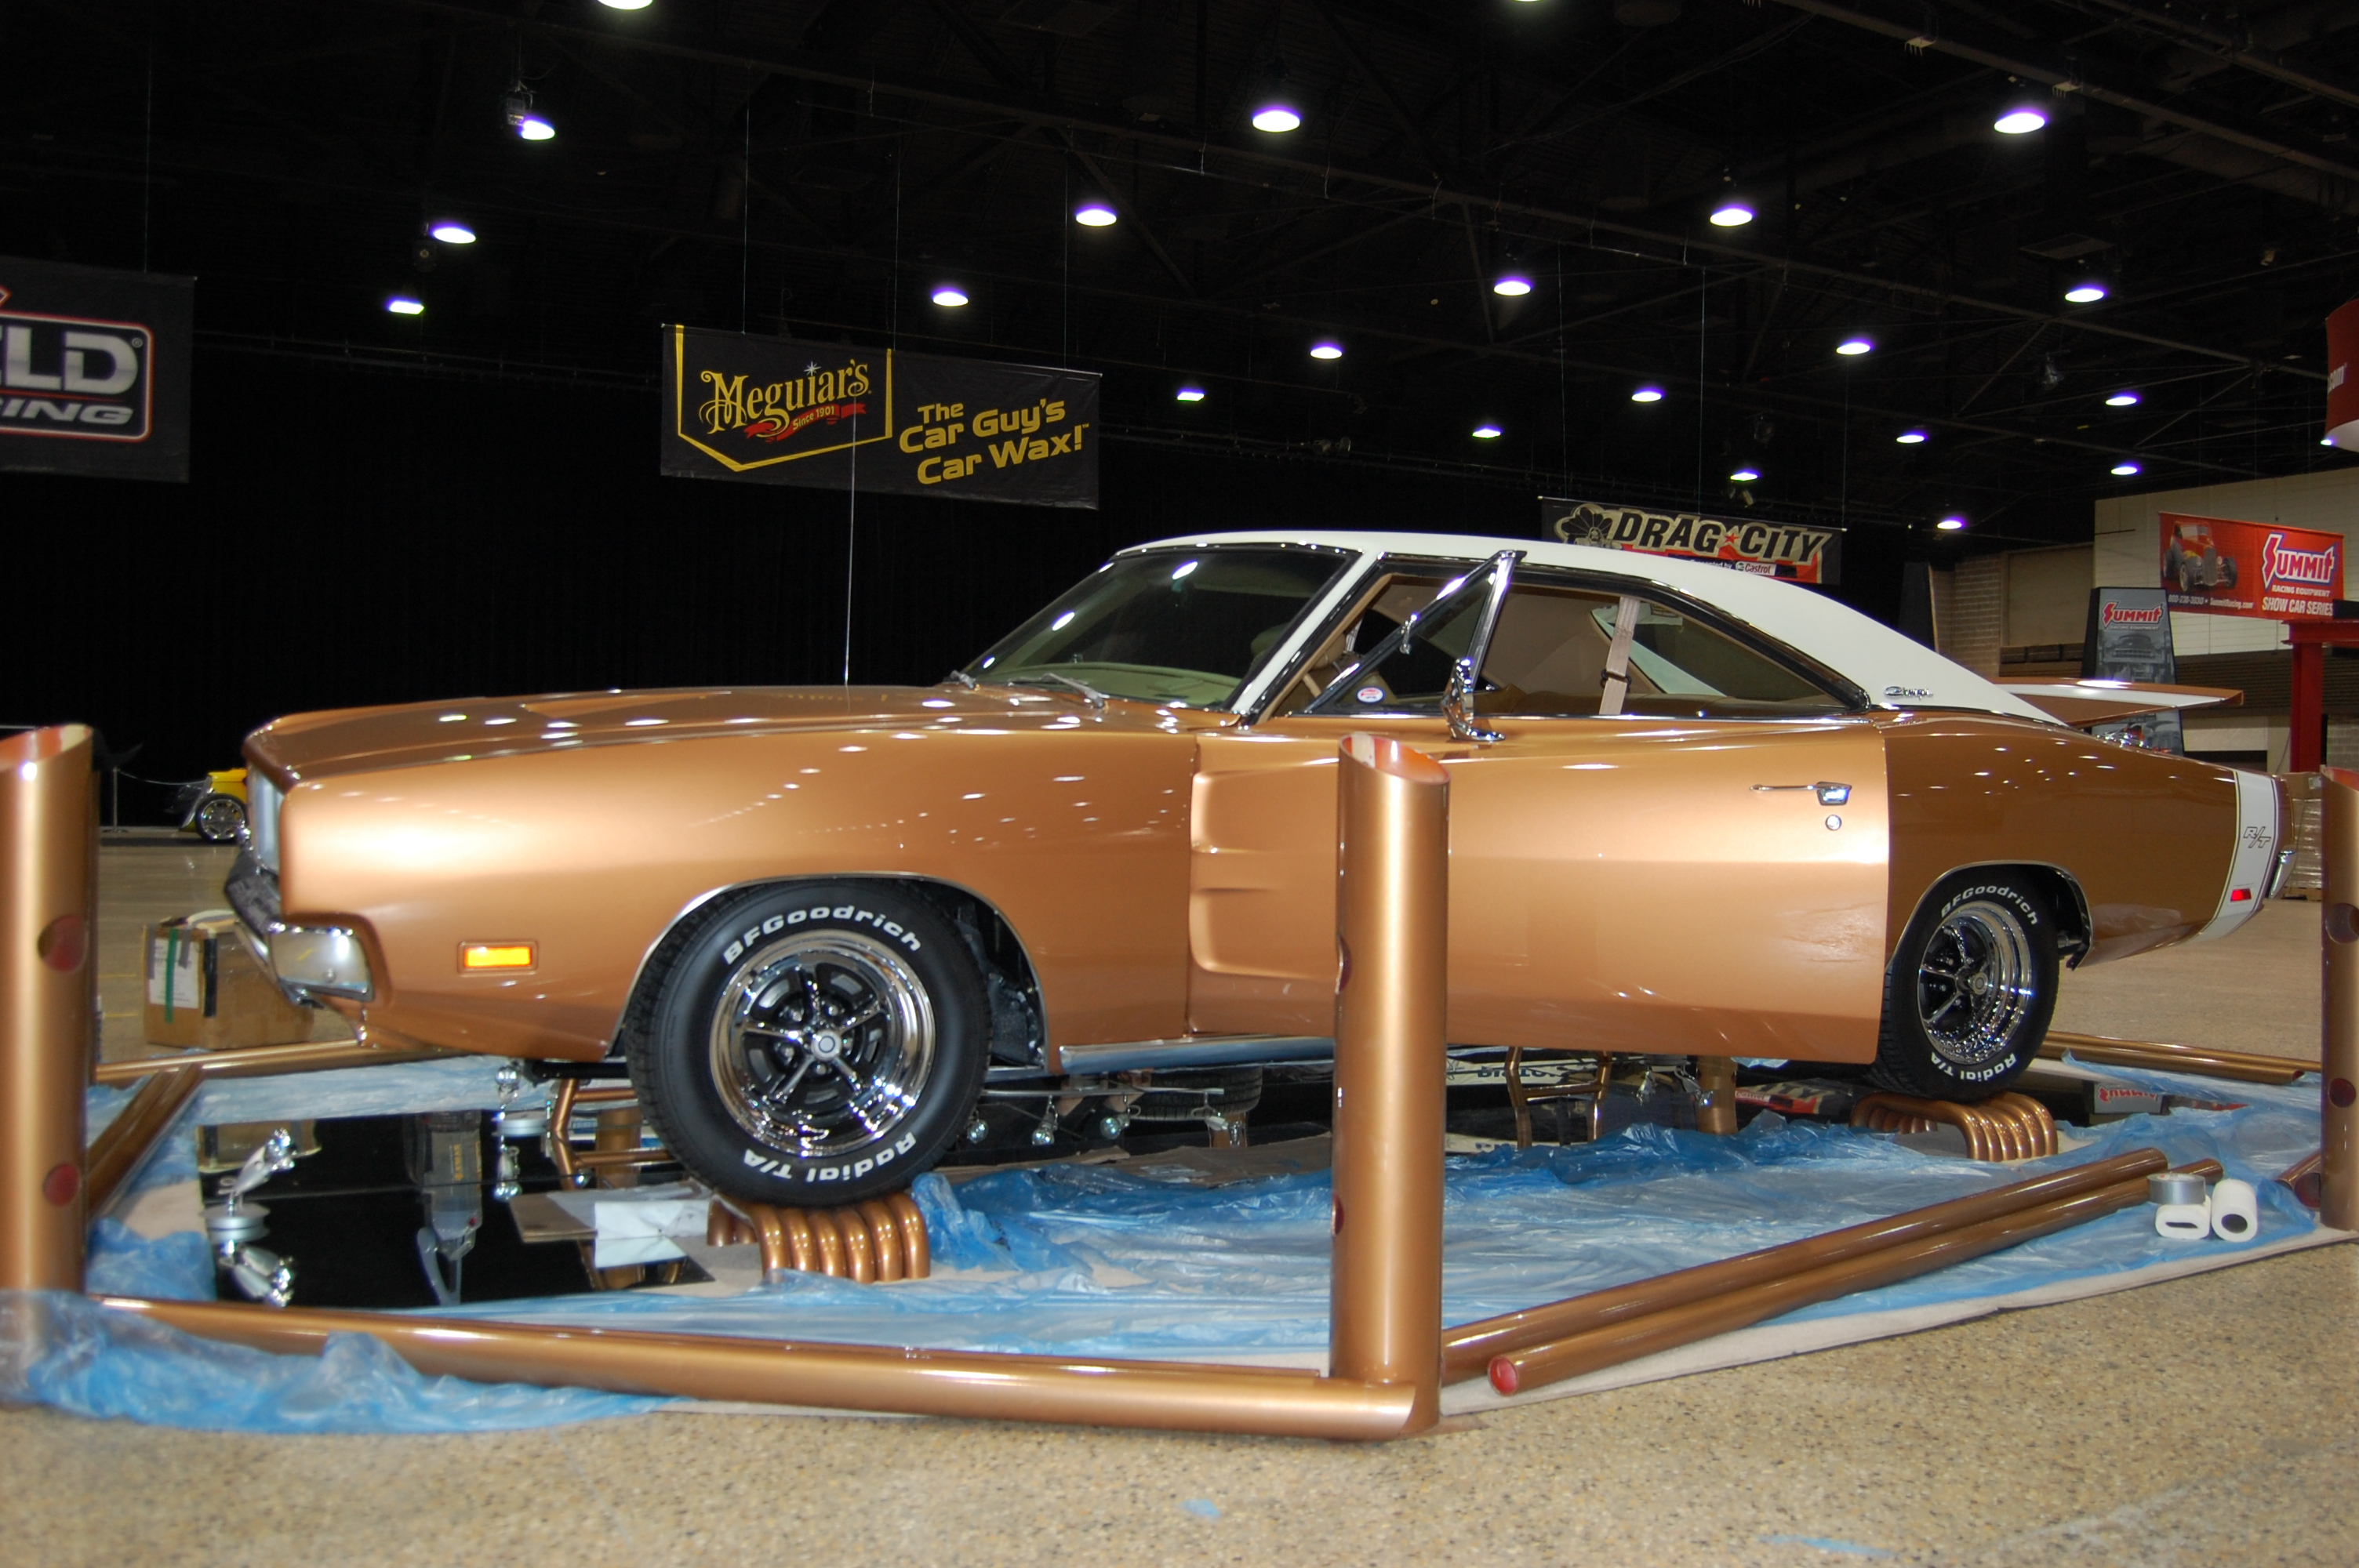 Lippert S 67 Nova Takes Three Top Prizes In Winnipeg